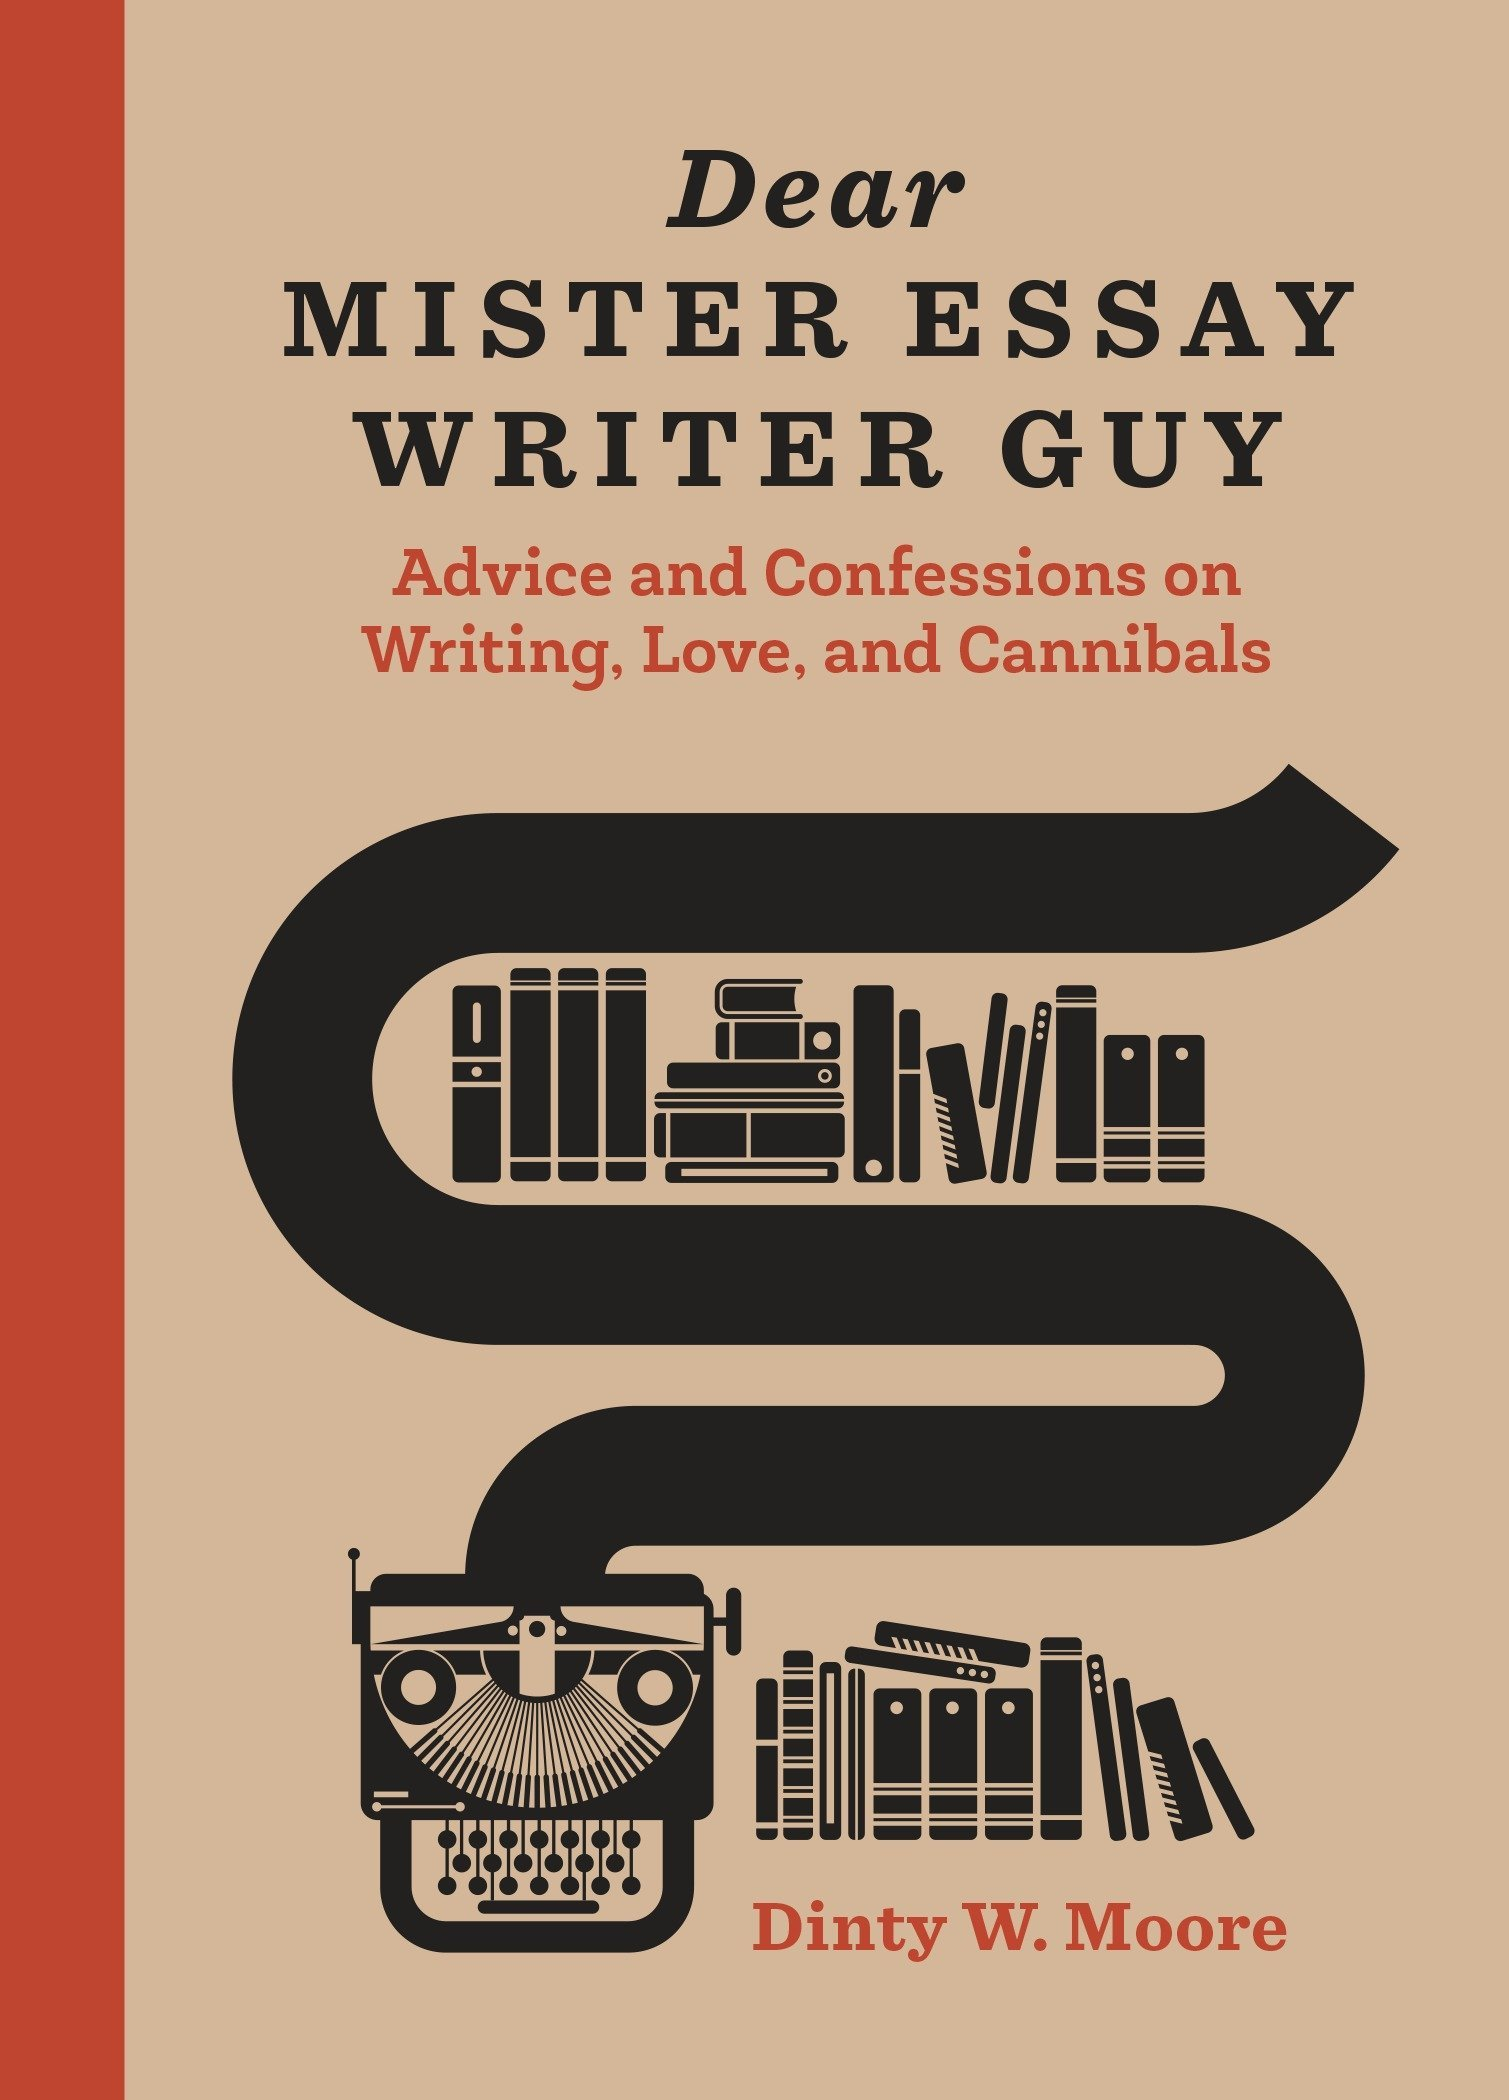 Fifth Business Essays Dear Mister Essay Writer Guy Advice And Confessions On Writing Love And  Cannibals Dinty W Moore  Amazoncom Books Essay About English Language also Essay Writing High School Dear Mister Essay Writer Guy Advice And Confessions On Writing  Political Science Essays